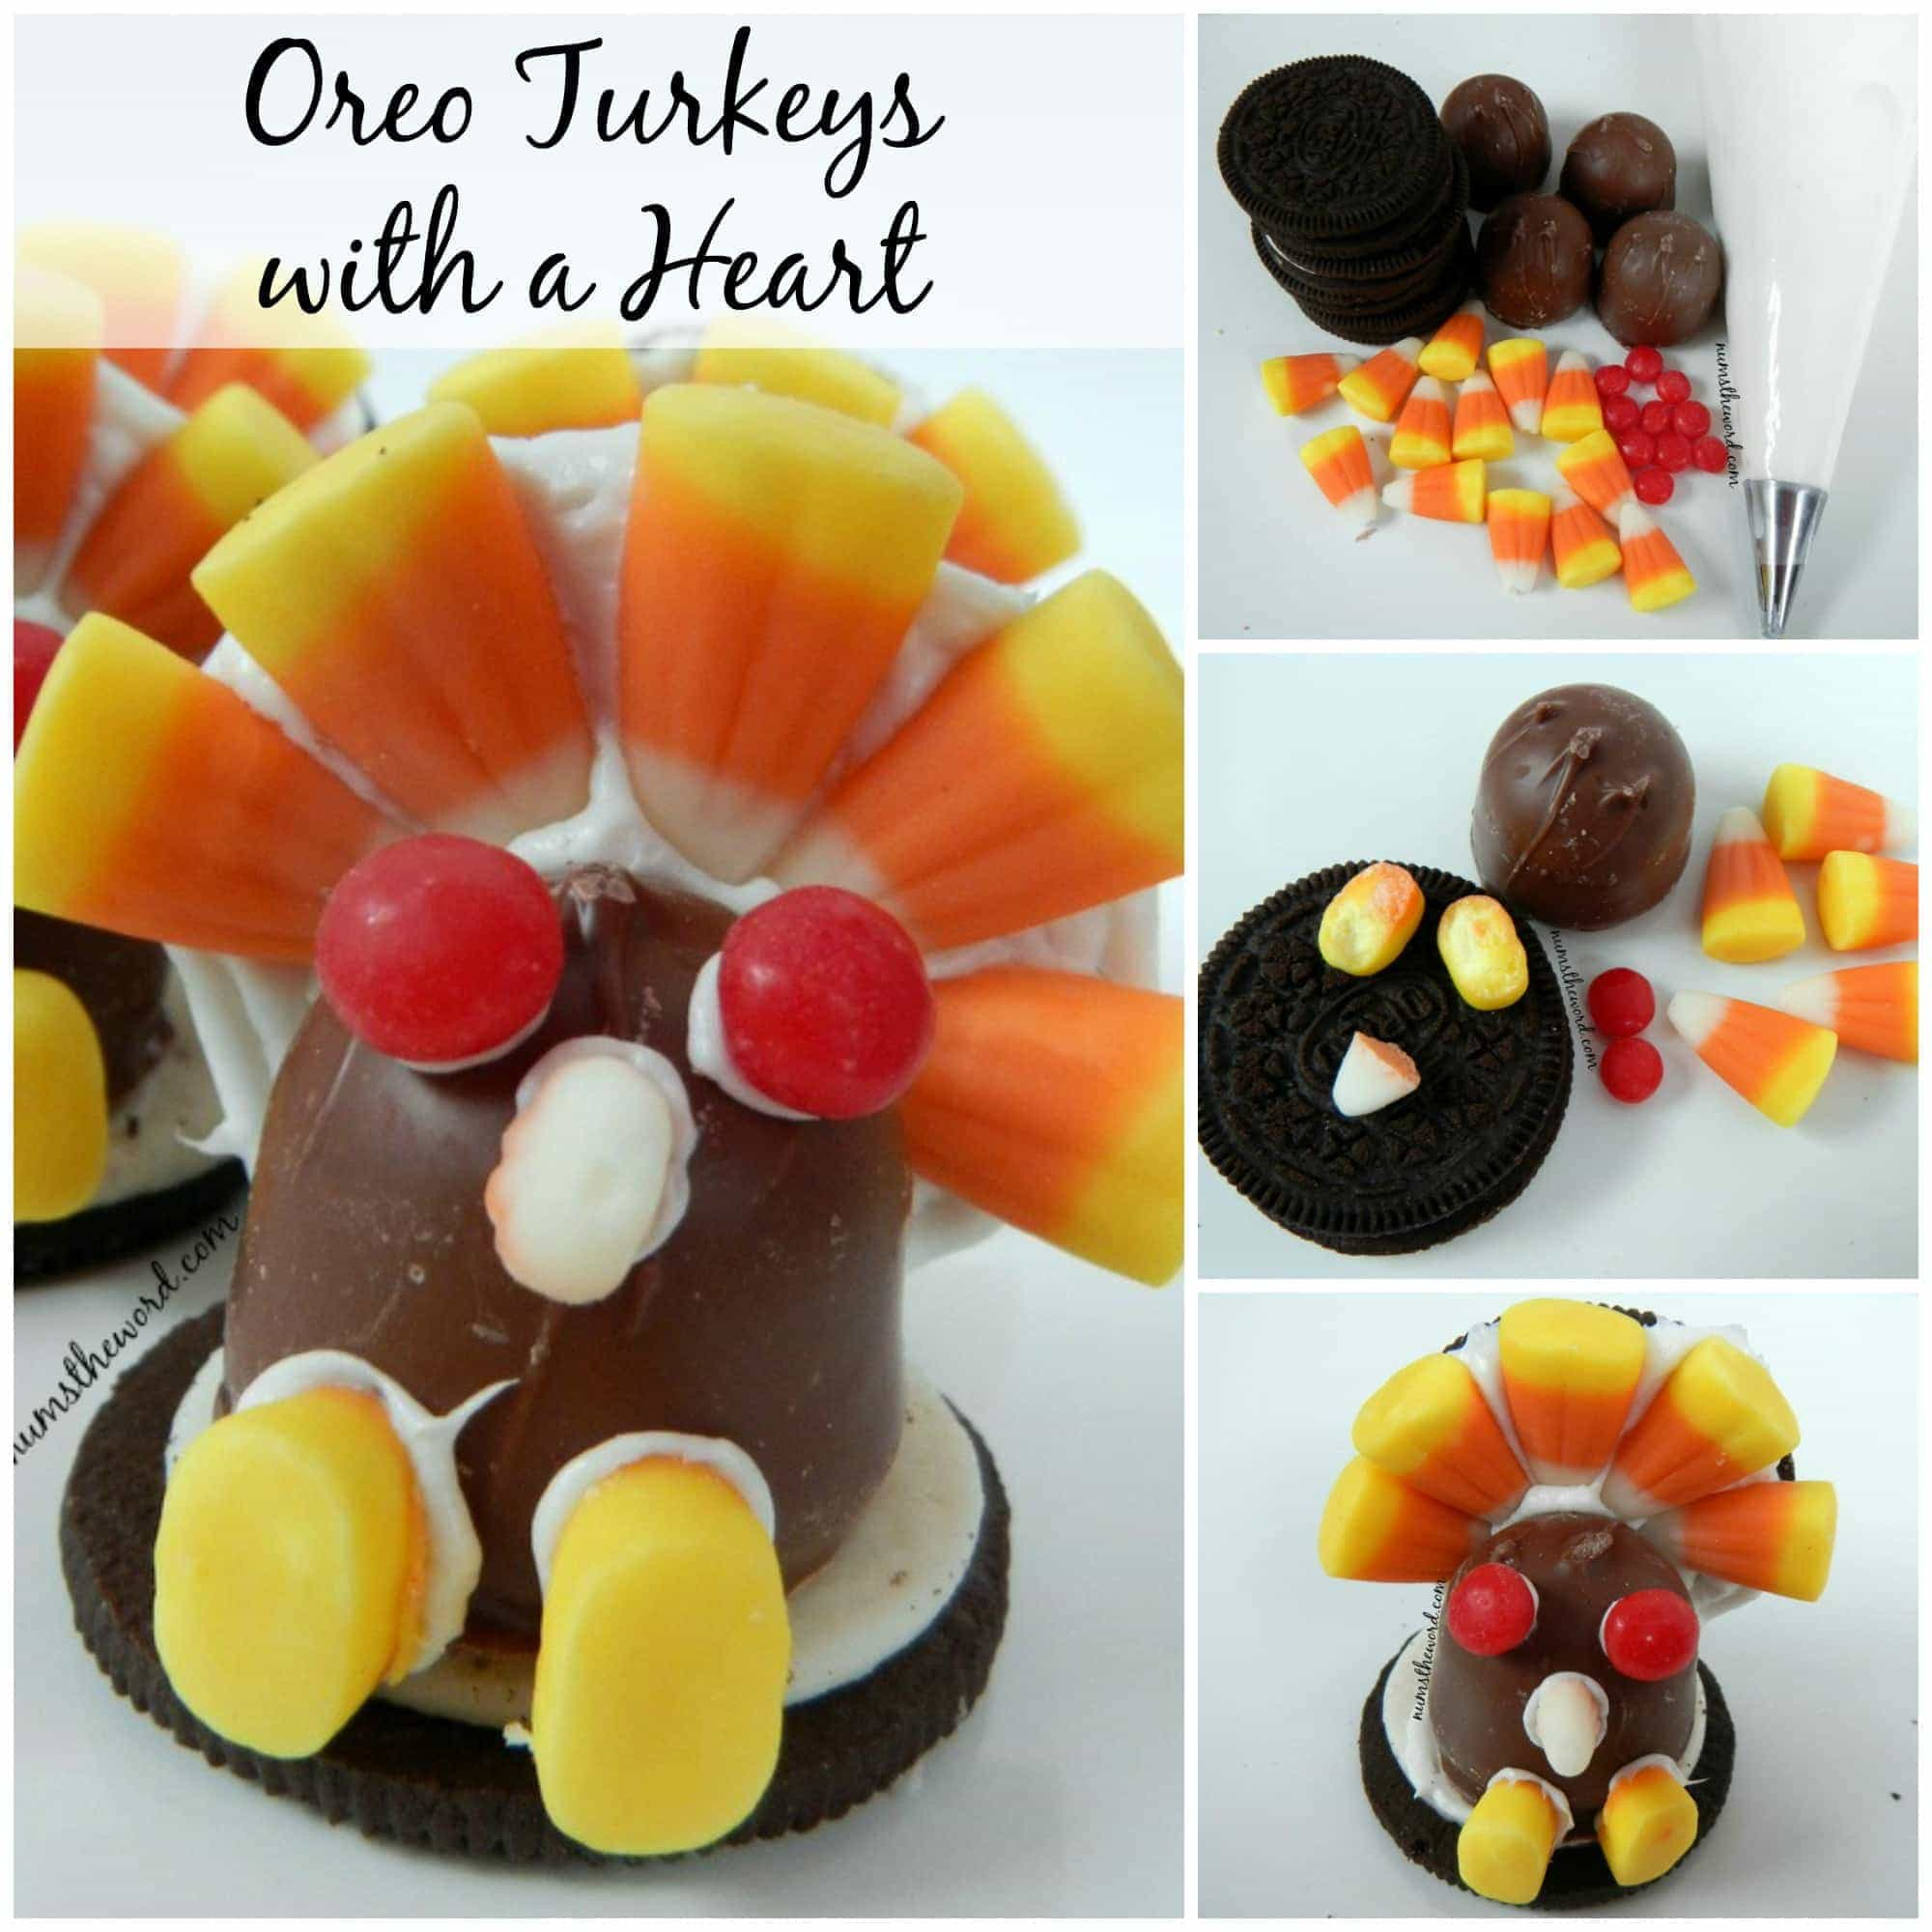 Oreo Turkeys with a Heart